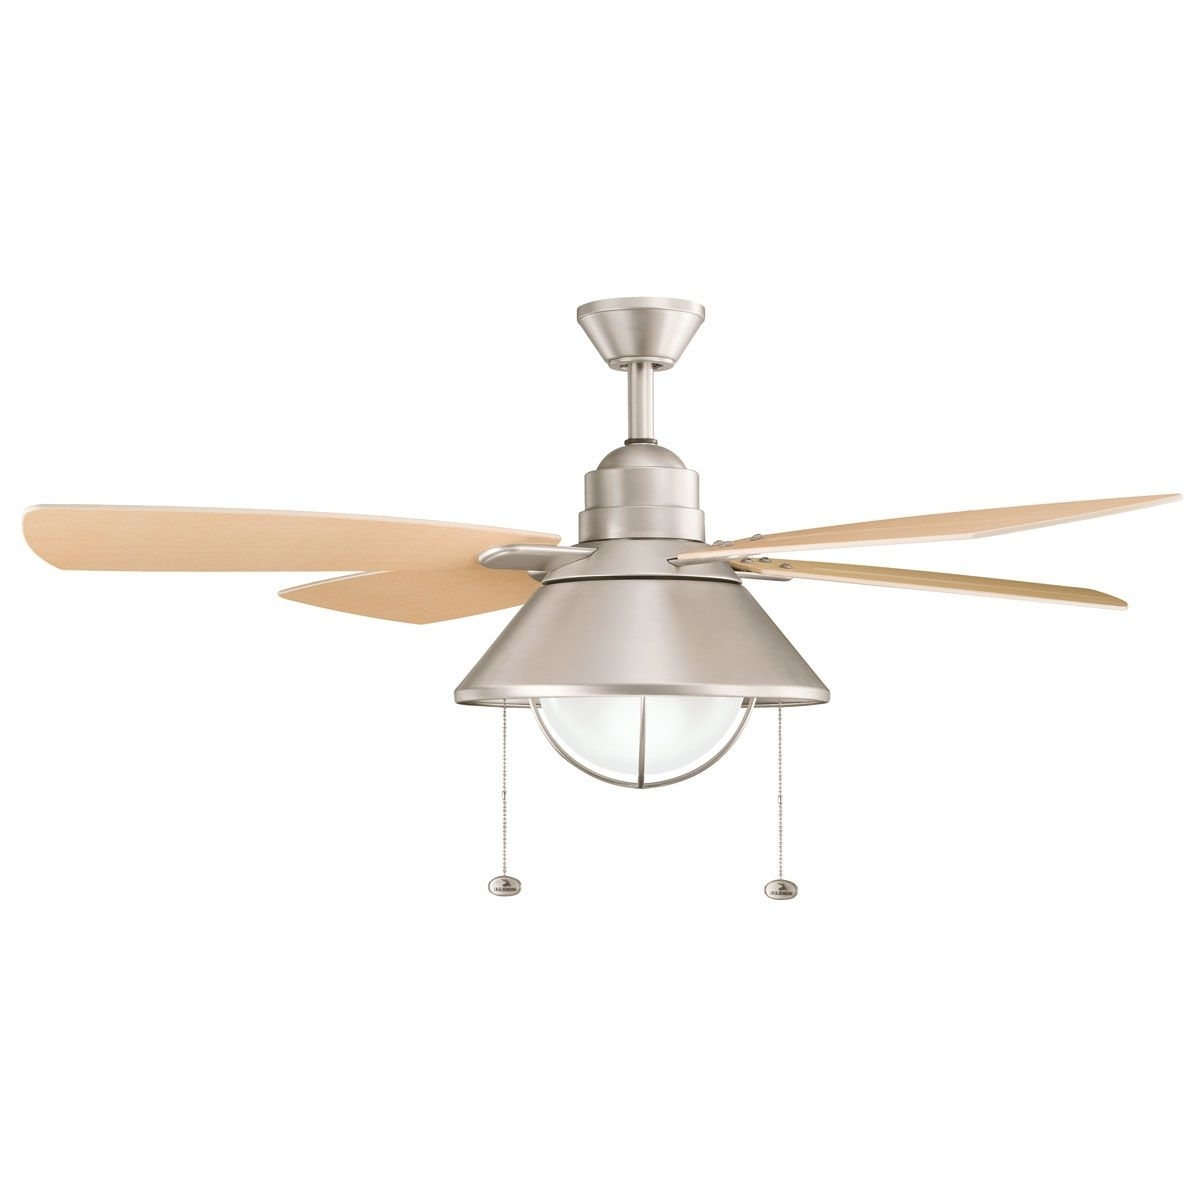 Most Popular Kichler Fans Seaside Ceiling Fan In Brushed Nickel (View 11 of 20)